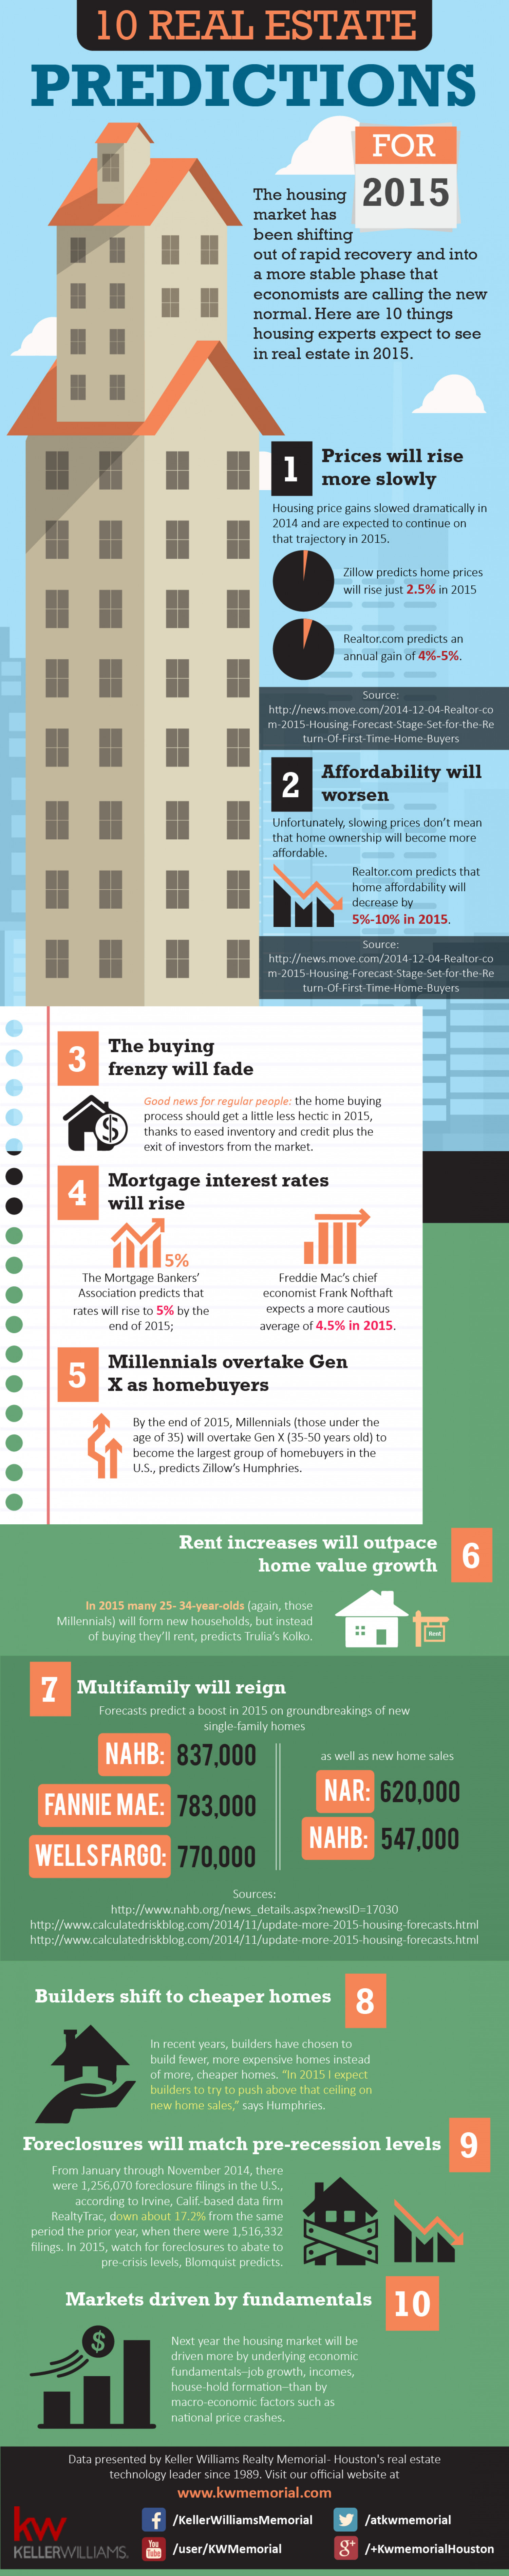 10 Real Estate Predictions For 2015 Infographic